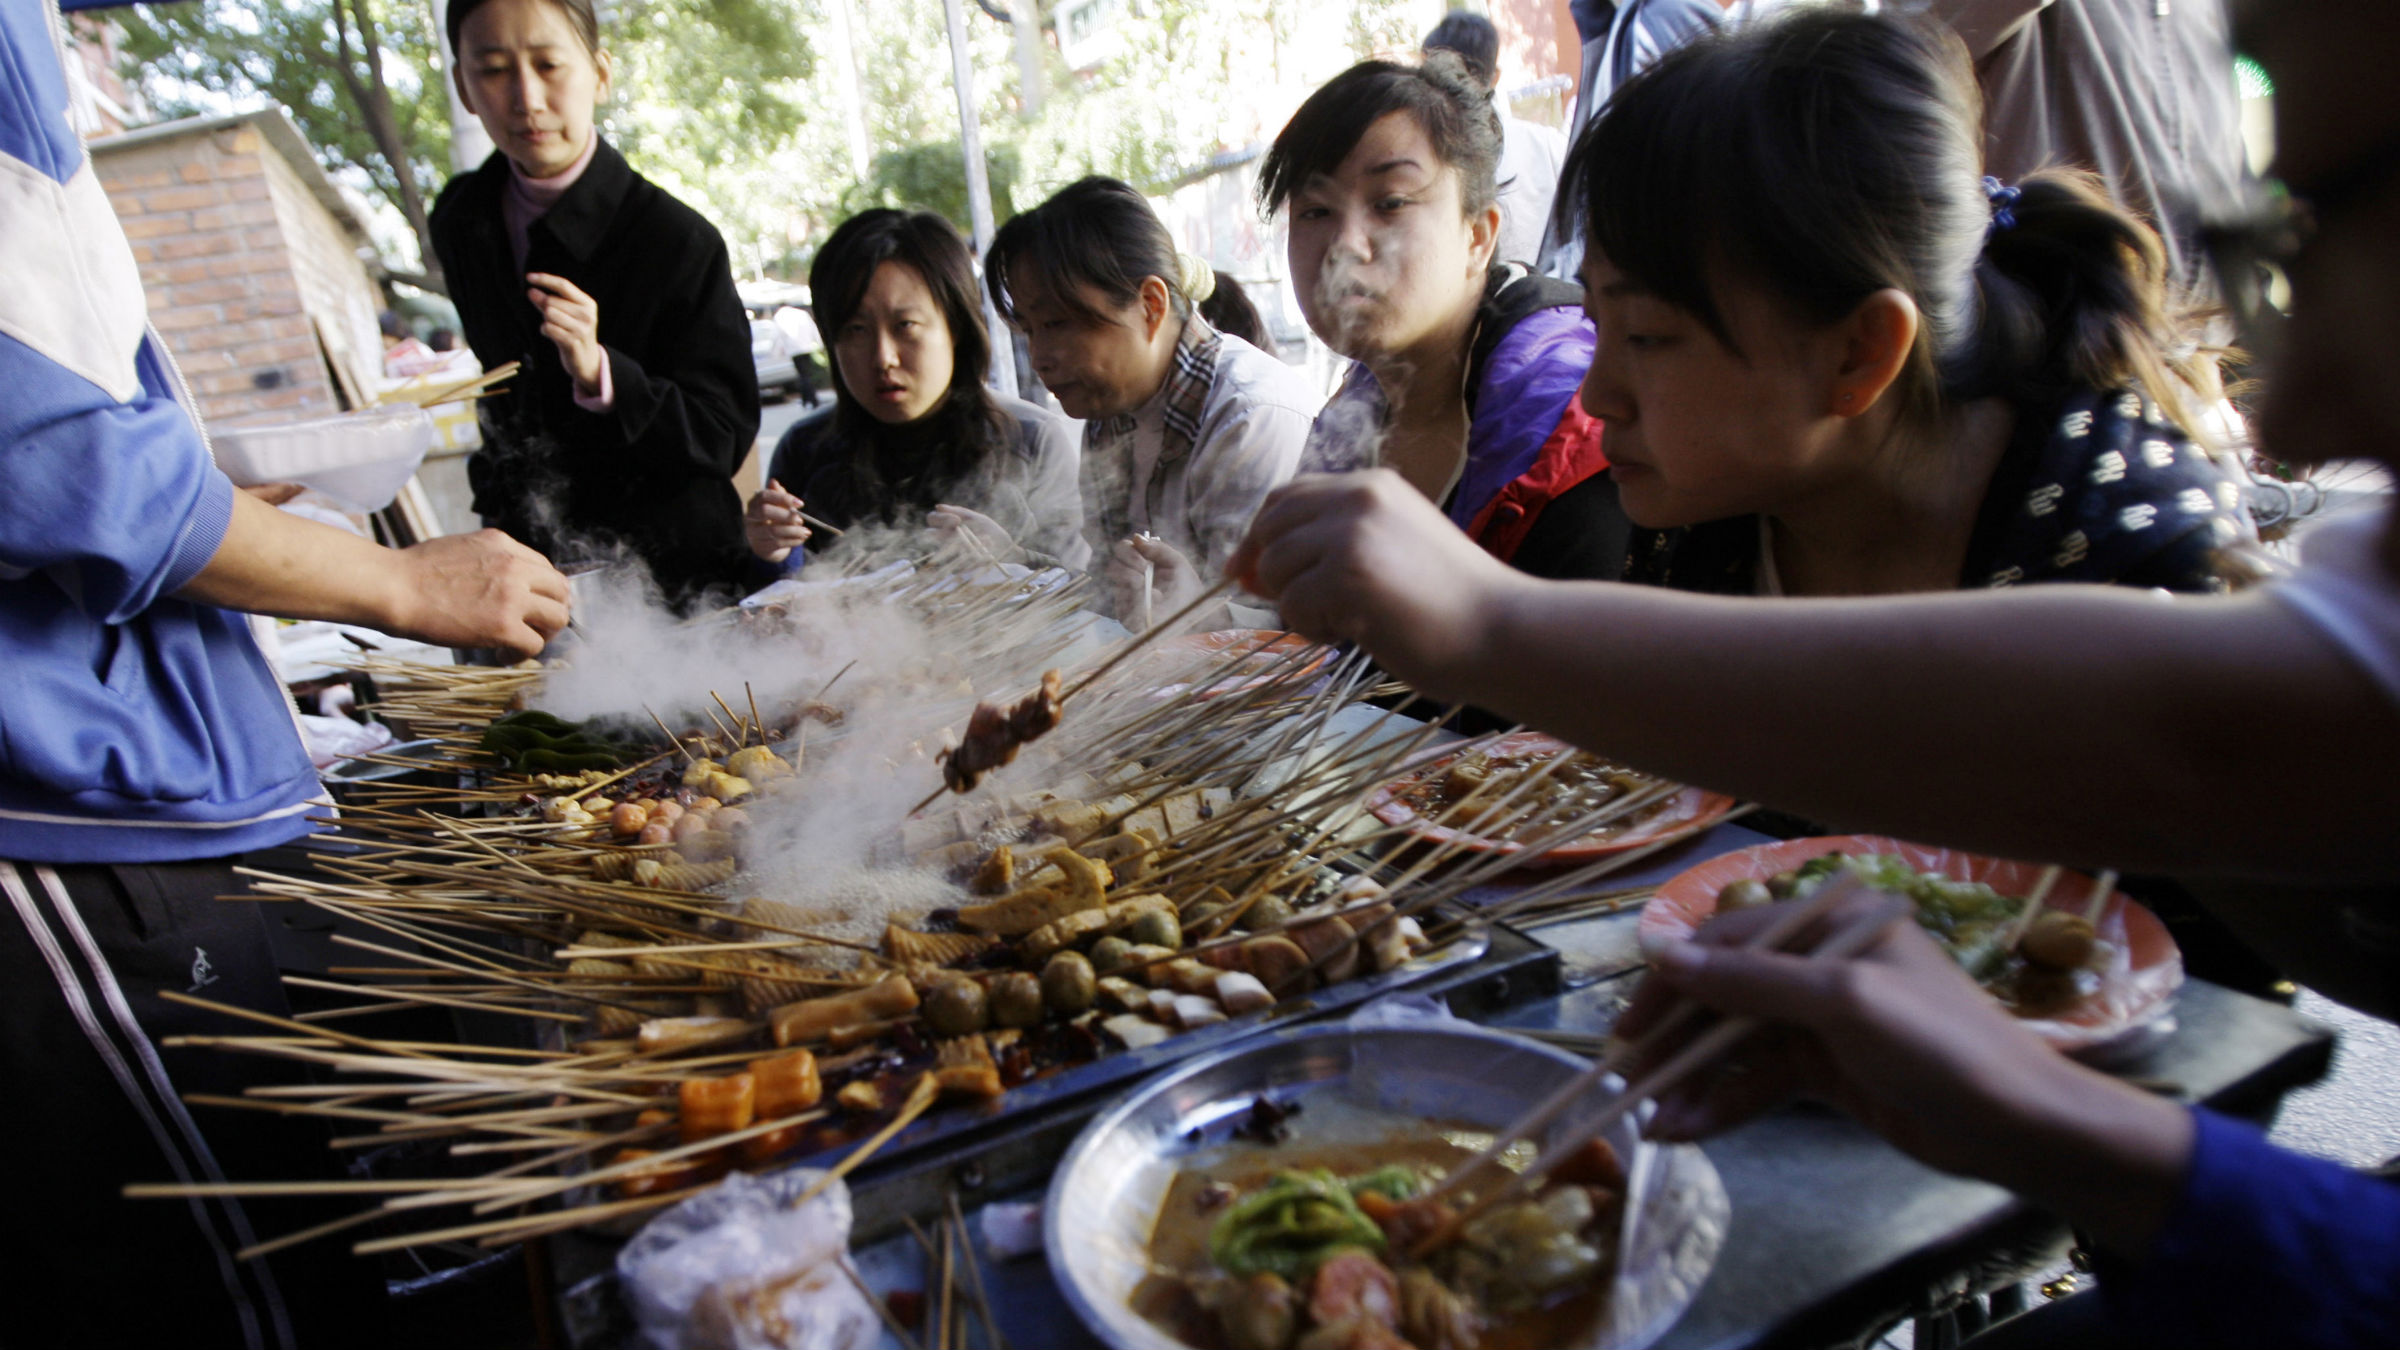 Customers eat at a food stall in a street in Beijing Wednesday, Oct. 8, 2008. Many food stalls have reopened on Beijing streets after being closed down during the Olympic Games.